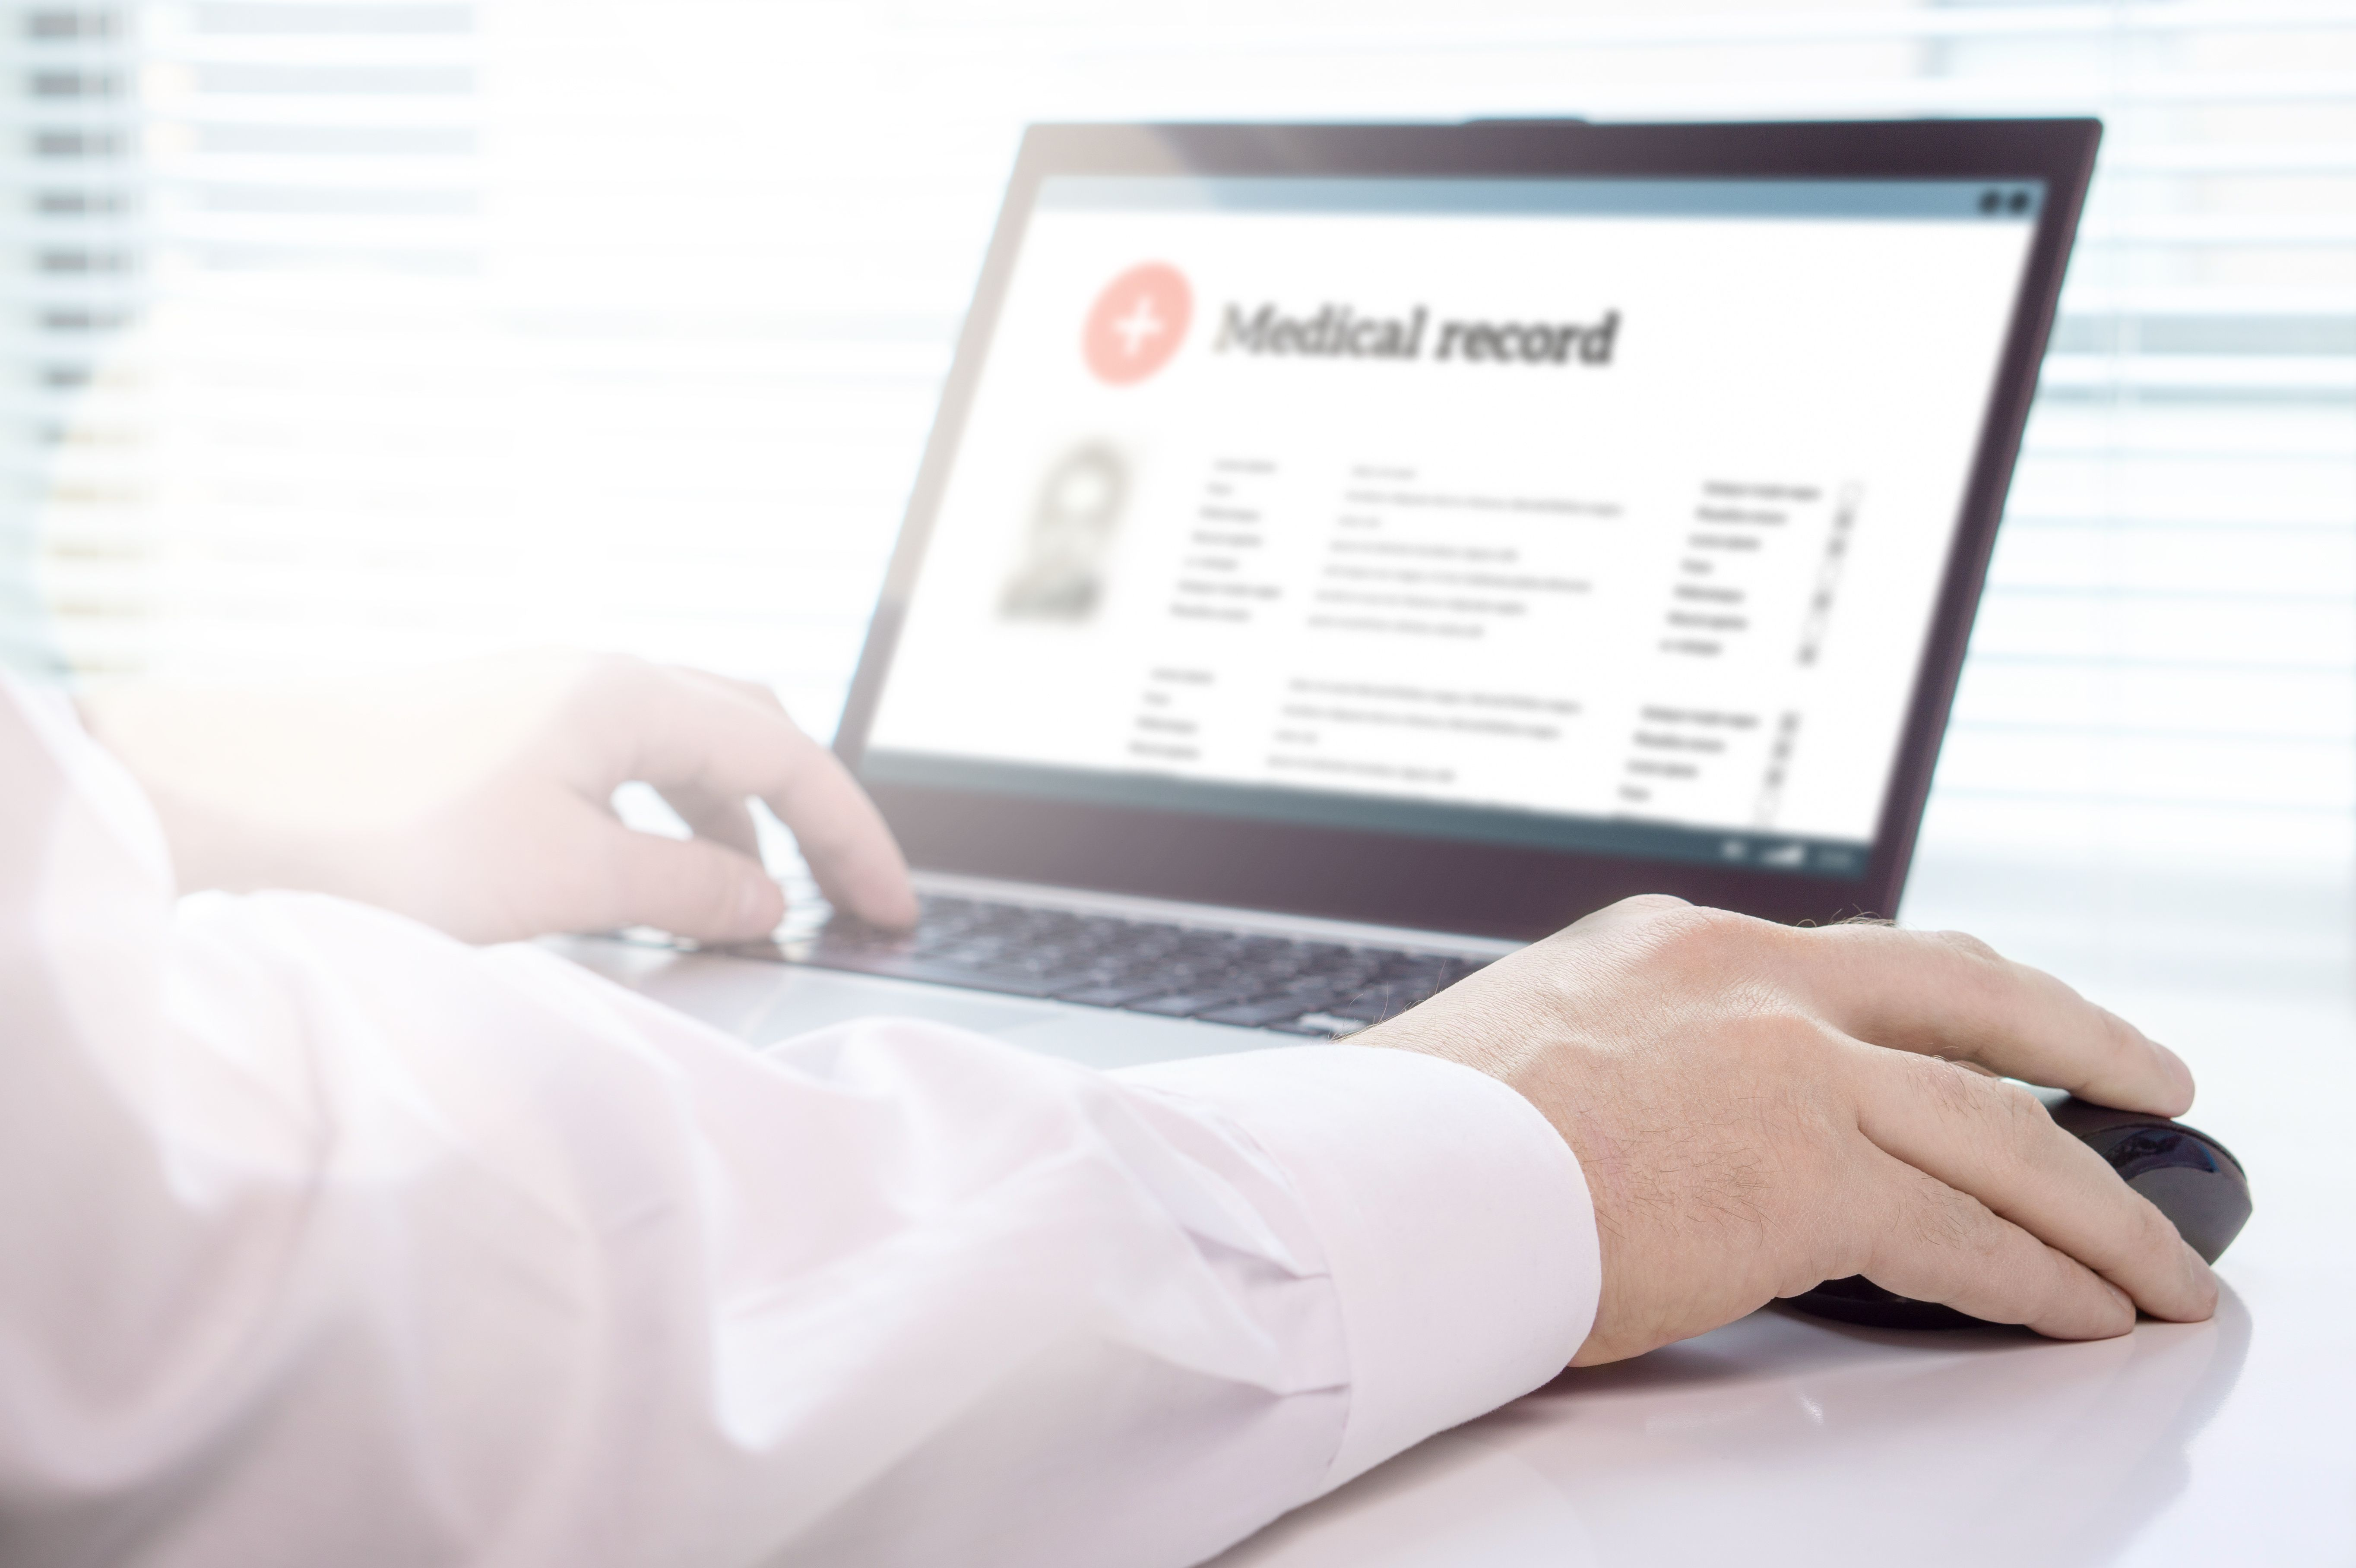 Electronic Records And Metadata Old And New Liability Risks Contemporary Ob Gyn